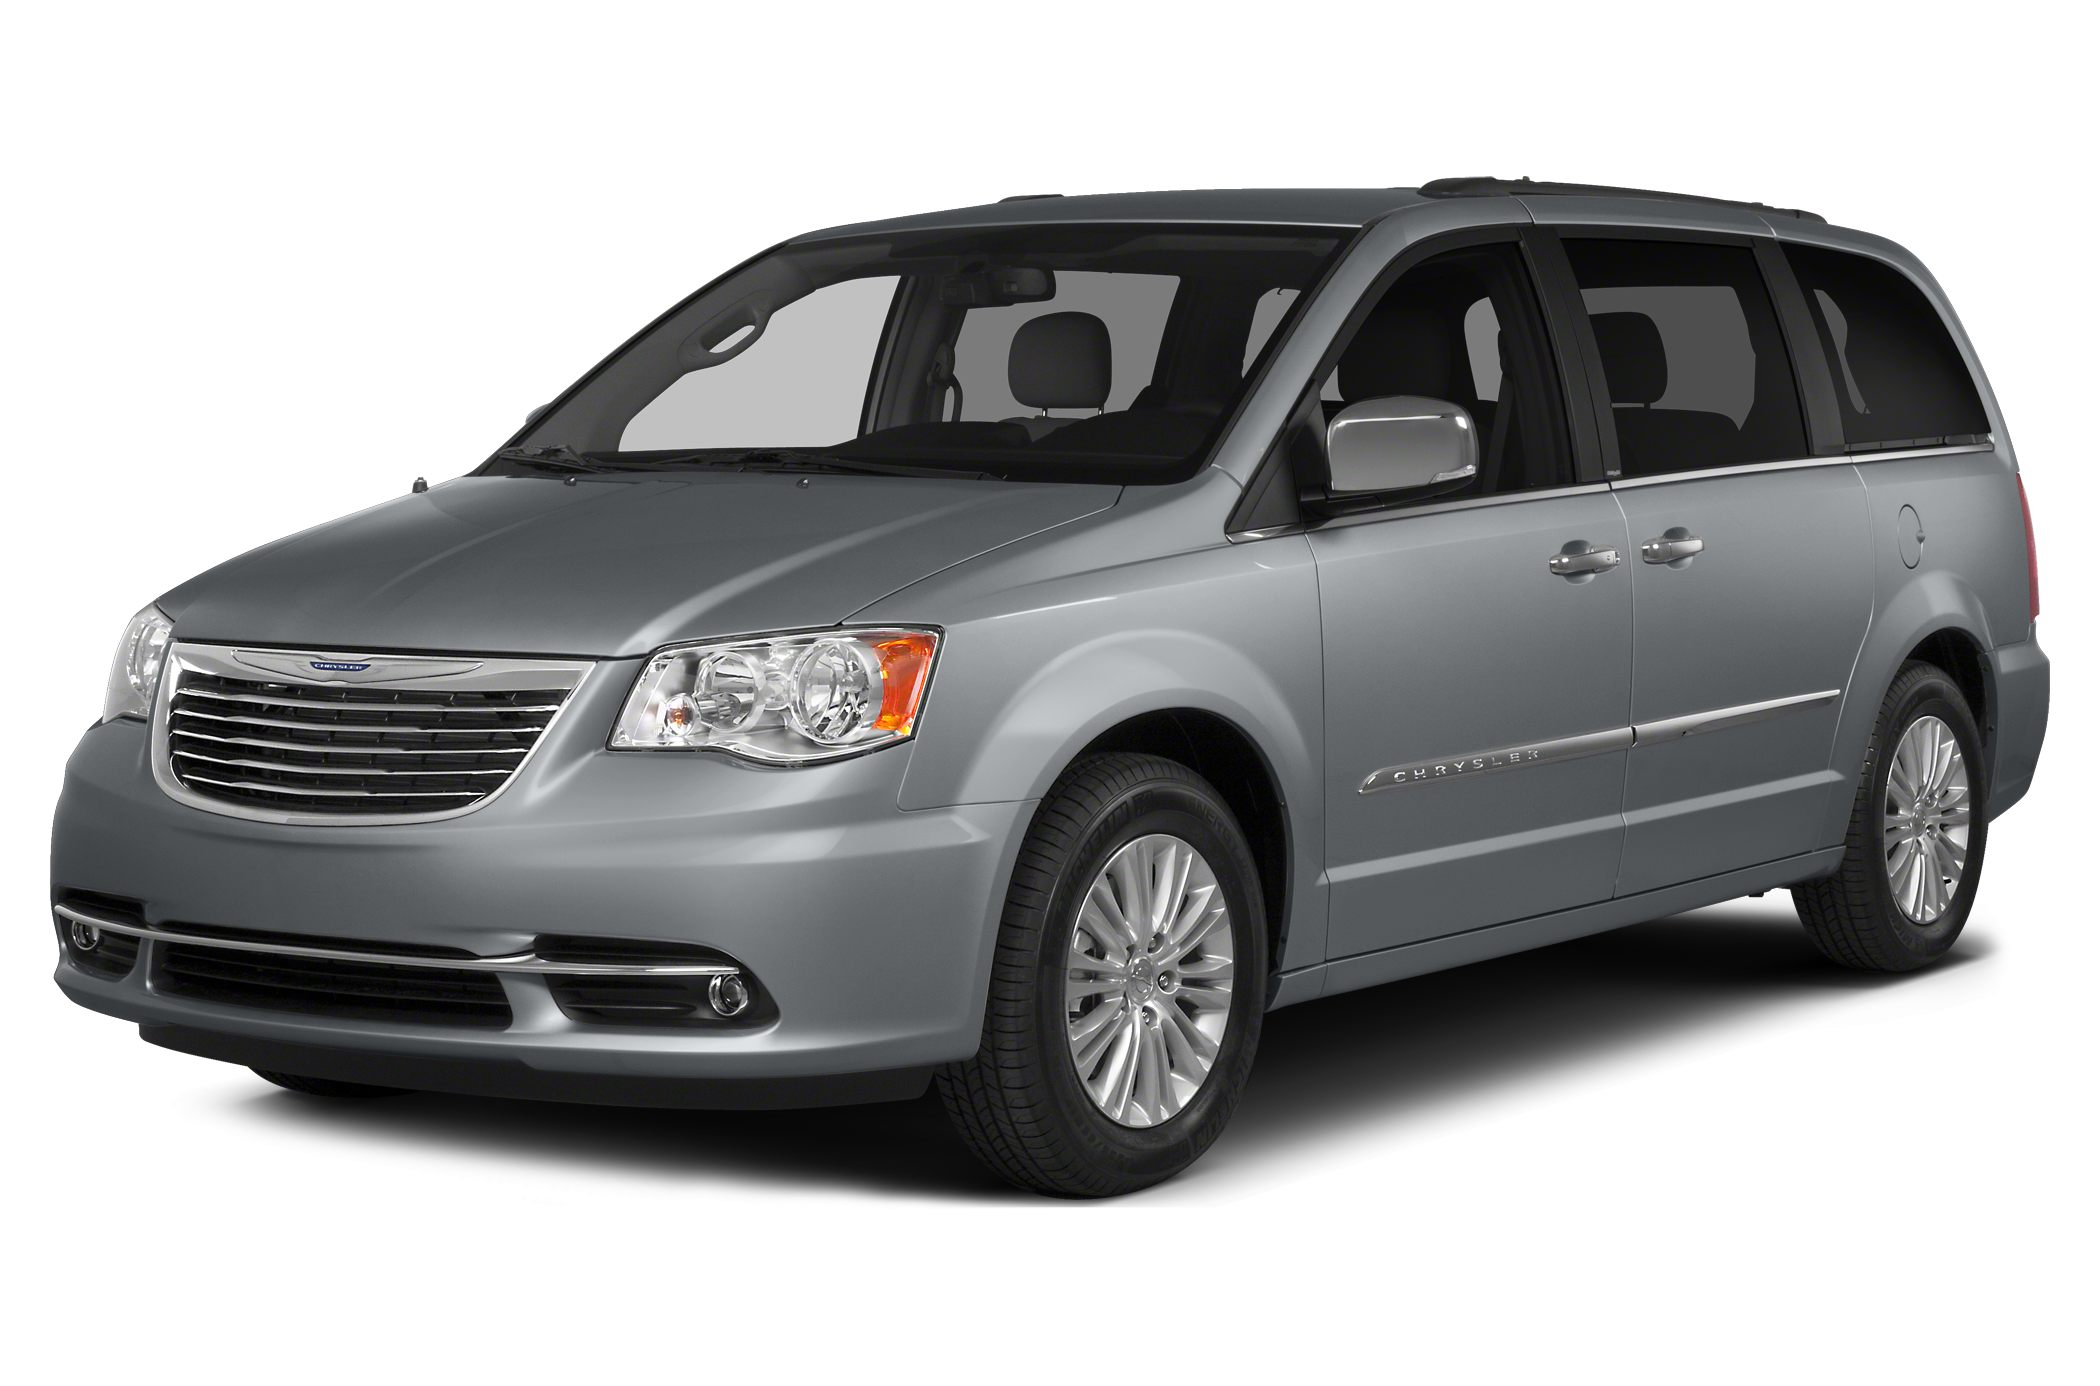 2014 Chrysler Town & Country Touring Minivan for sale in Portland for $19,490 with 31,264 miles.